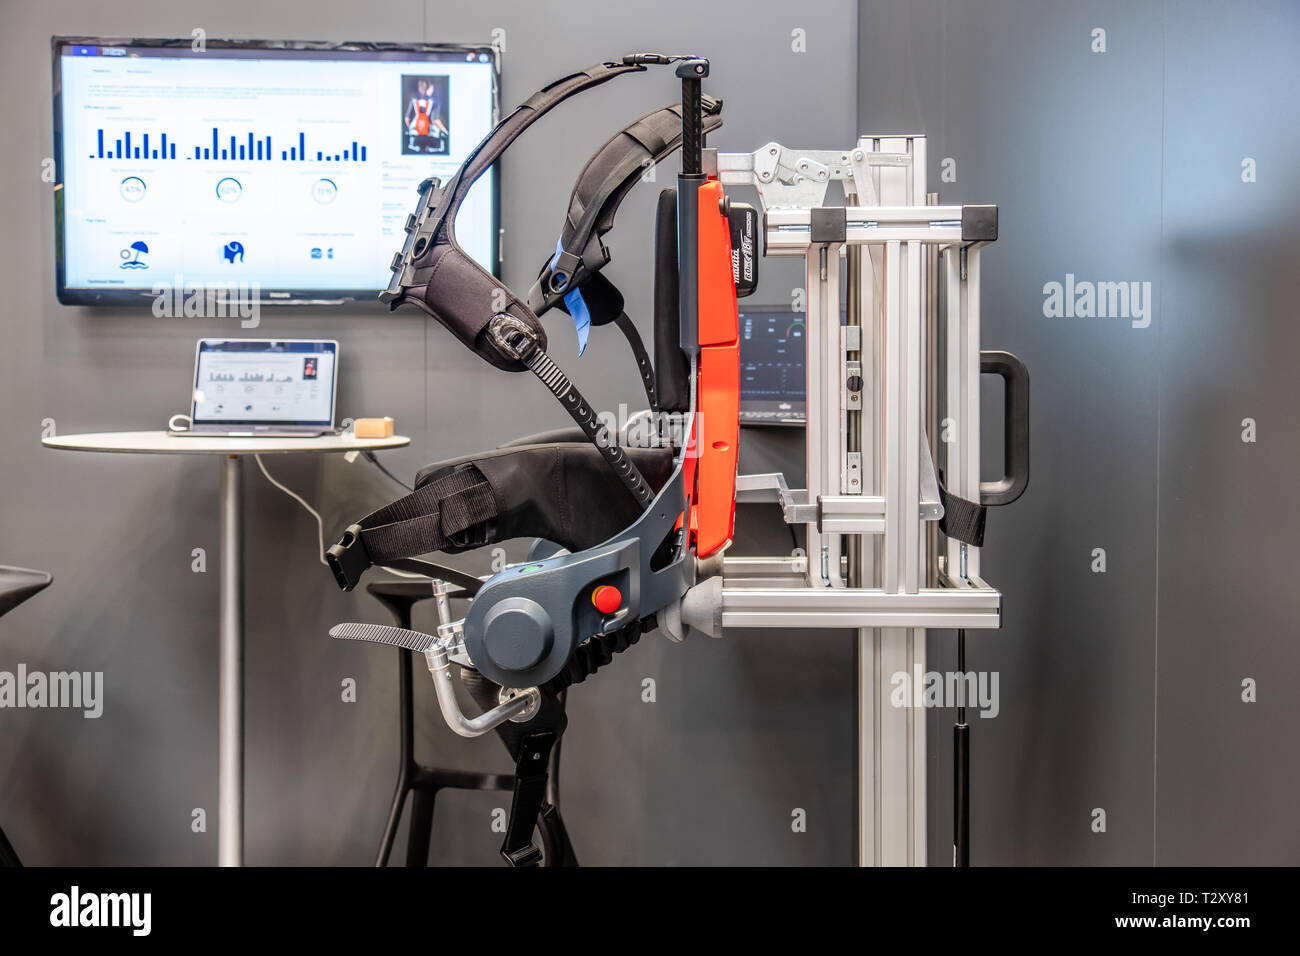 HANNOVER / GERMANY - APRIL 02 2019 : German Bionic presents first robot exoskeleton for the Industrial IoT at the HANNOVER FAIR. - Stock Image